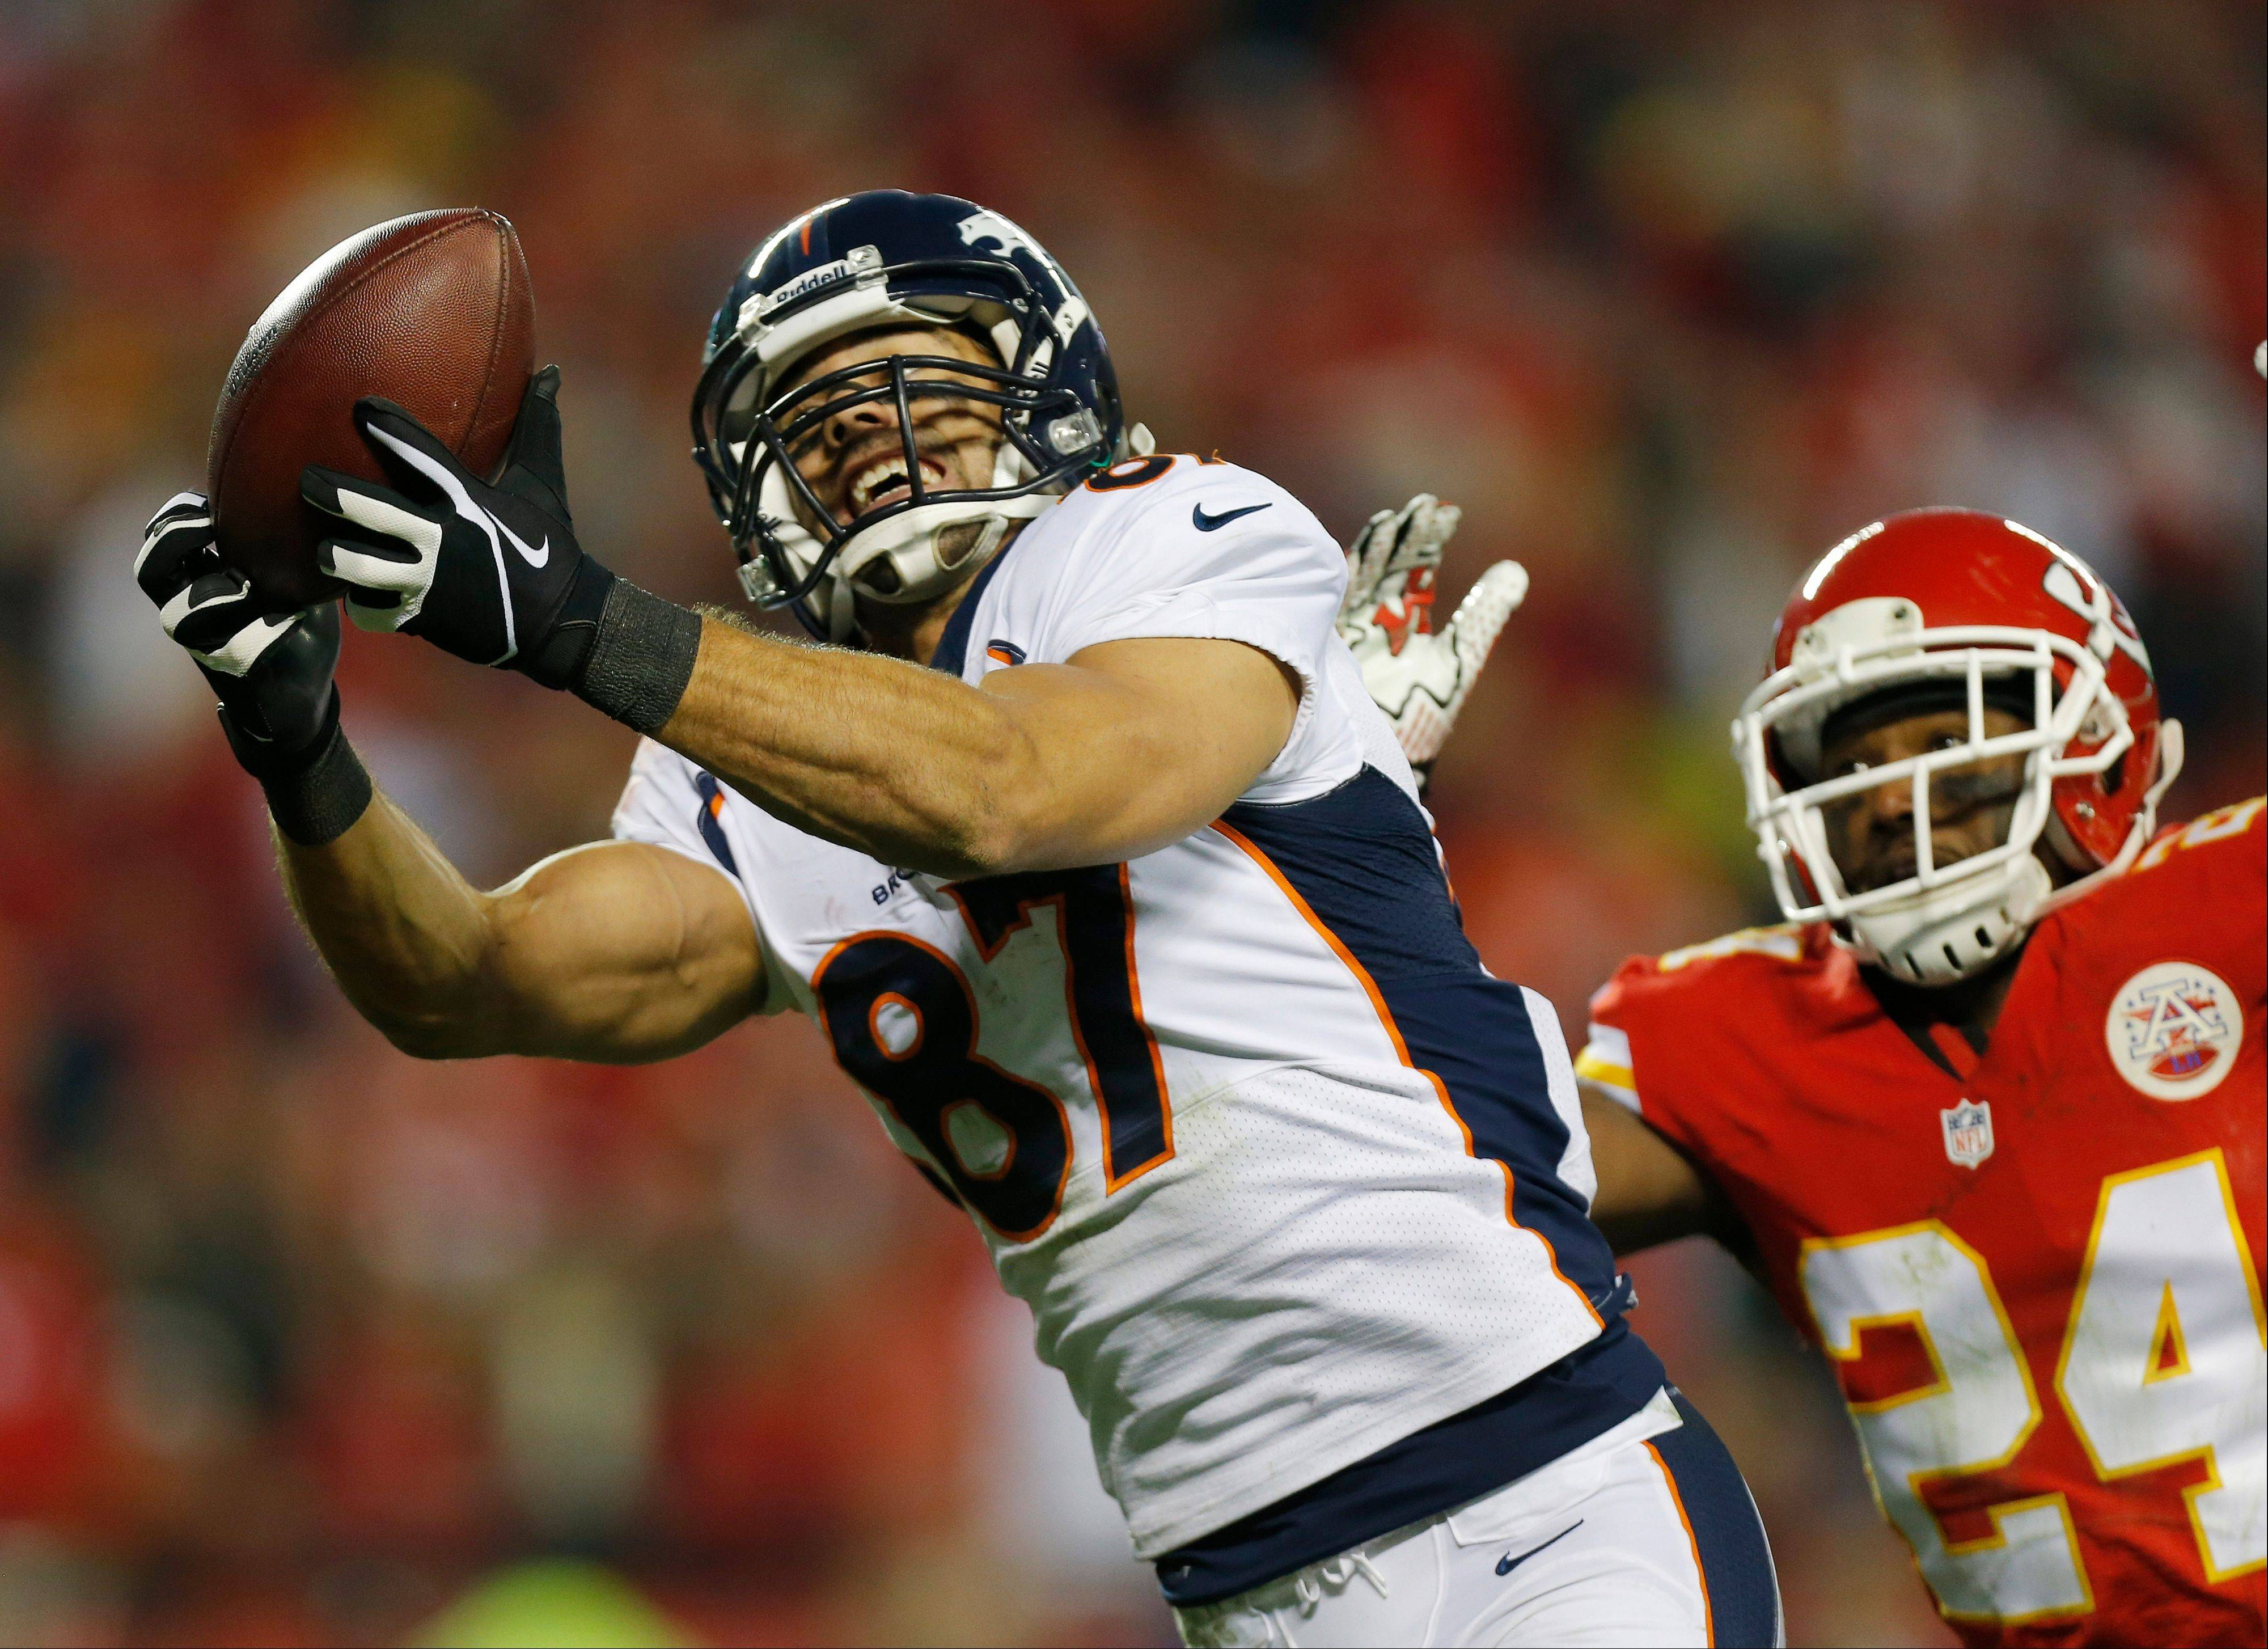 Denver Broncos wide receiver Eric Decker (87) makes a touchdown reception against Kansas City Chiefs cornerback Brandon Flowers (24) during the second half Sunday in Kansas City, Mo.